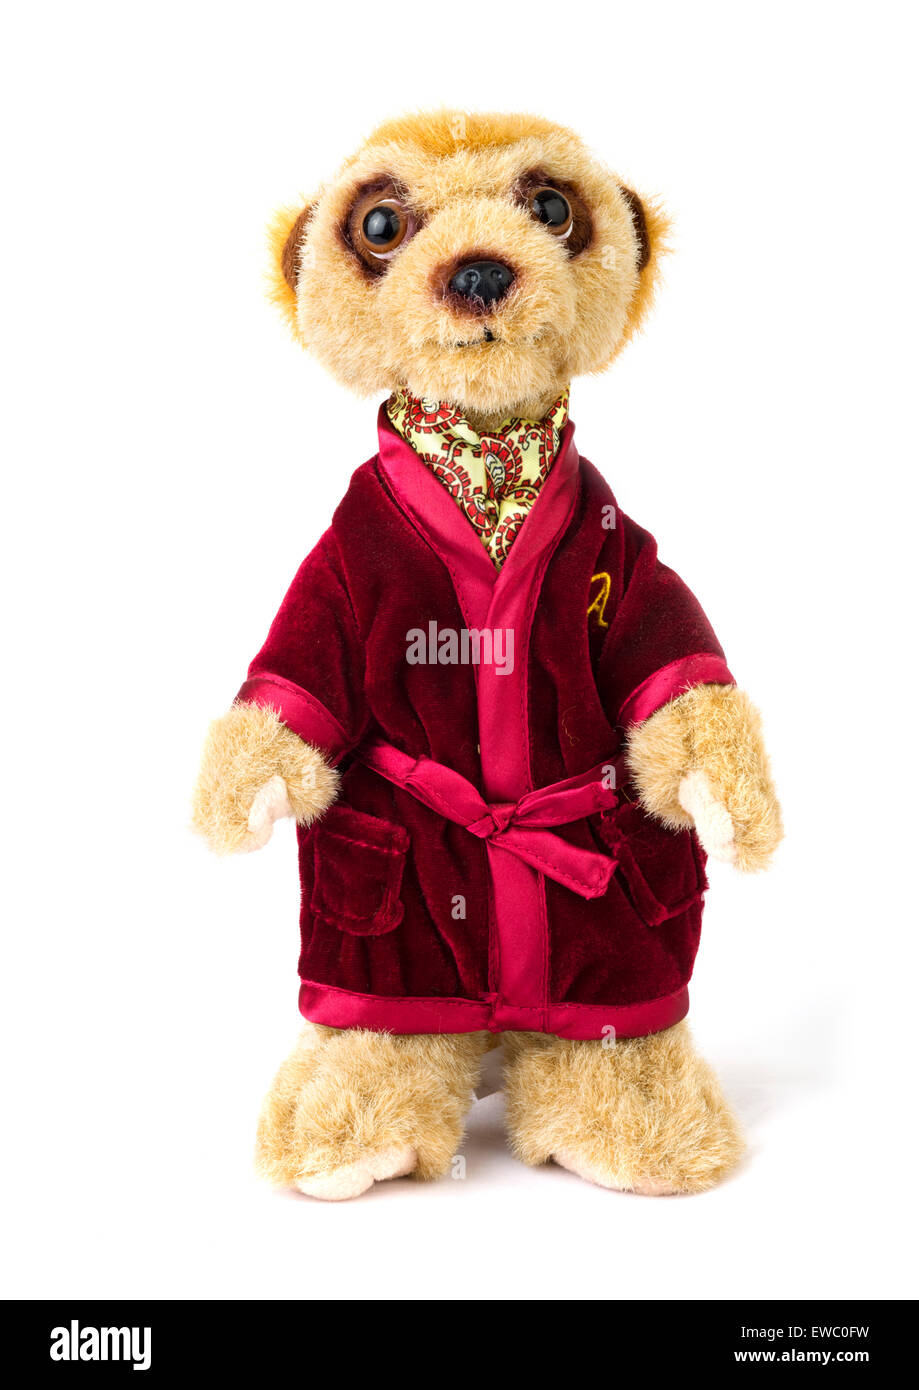 Aleksandr Orlov meerkat toy from Comparethemarket.com price comparison website, UK - Stock Image